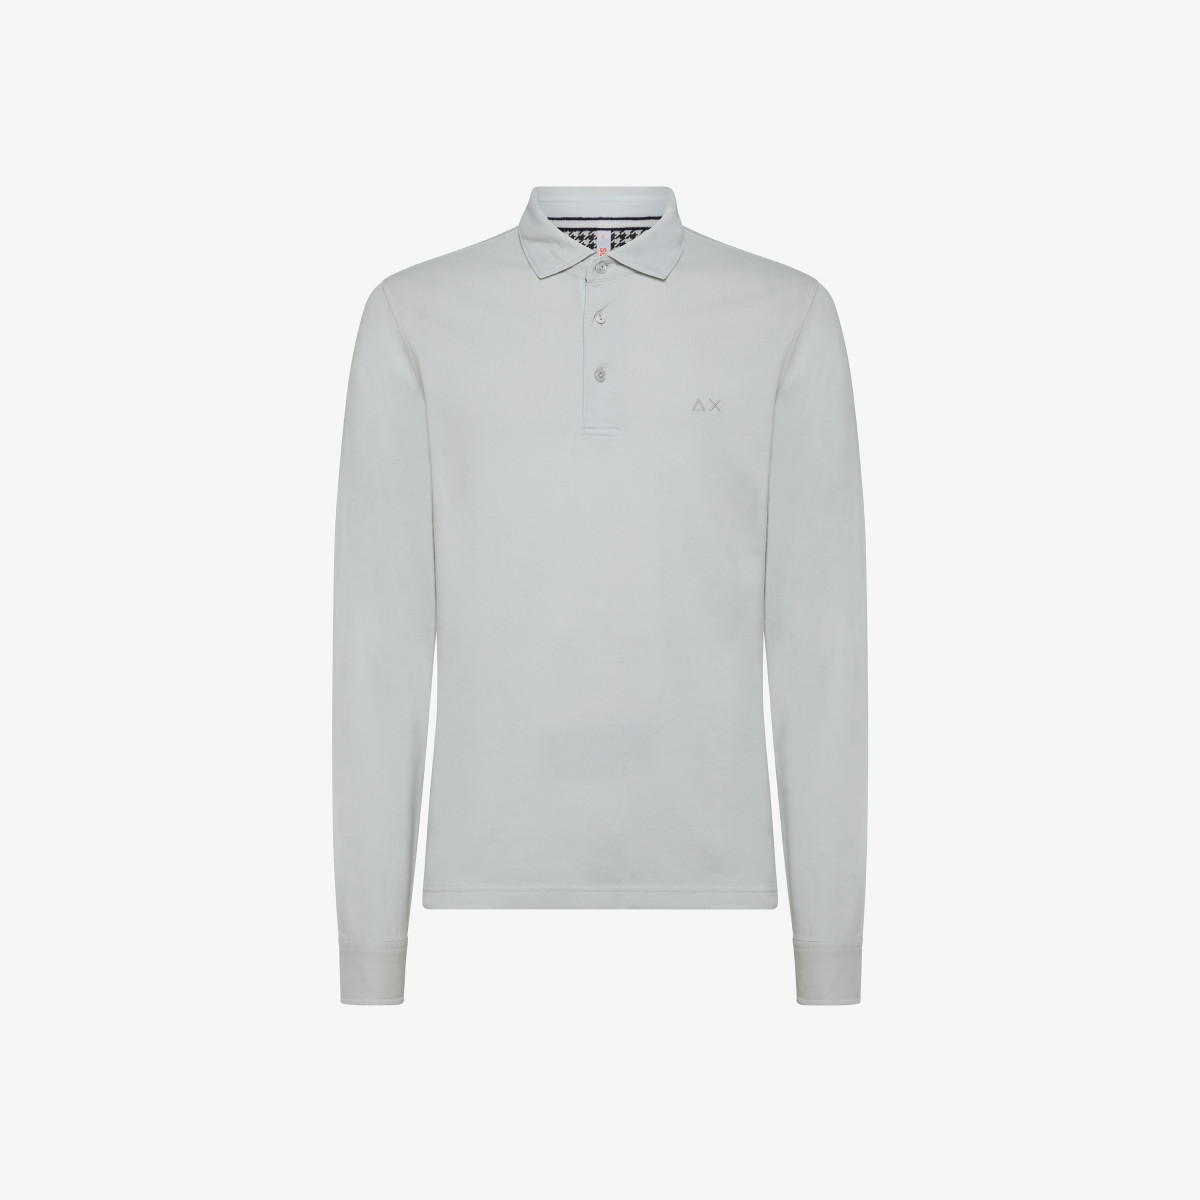 POLO EL. SHIRT COLLAR COLD DYE L/S OYSTER